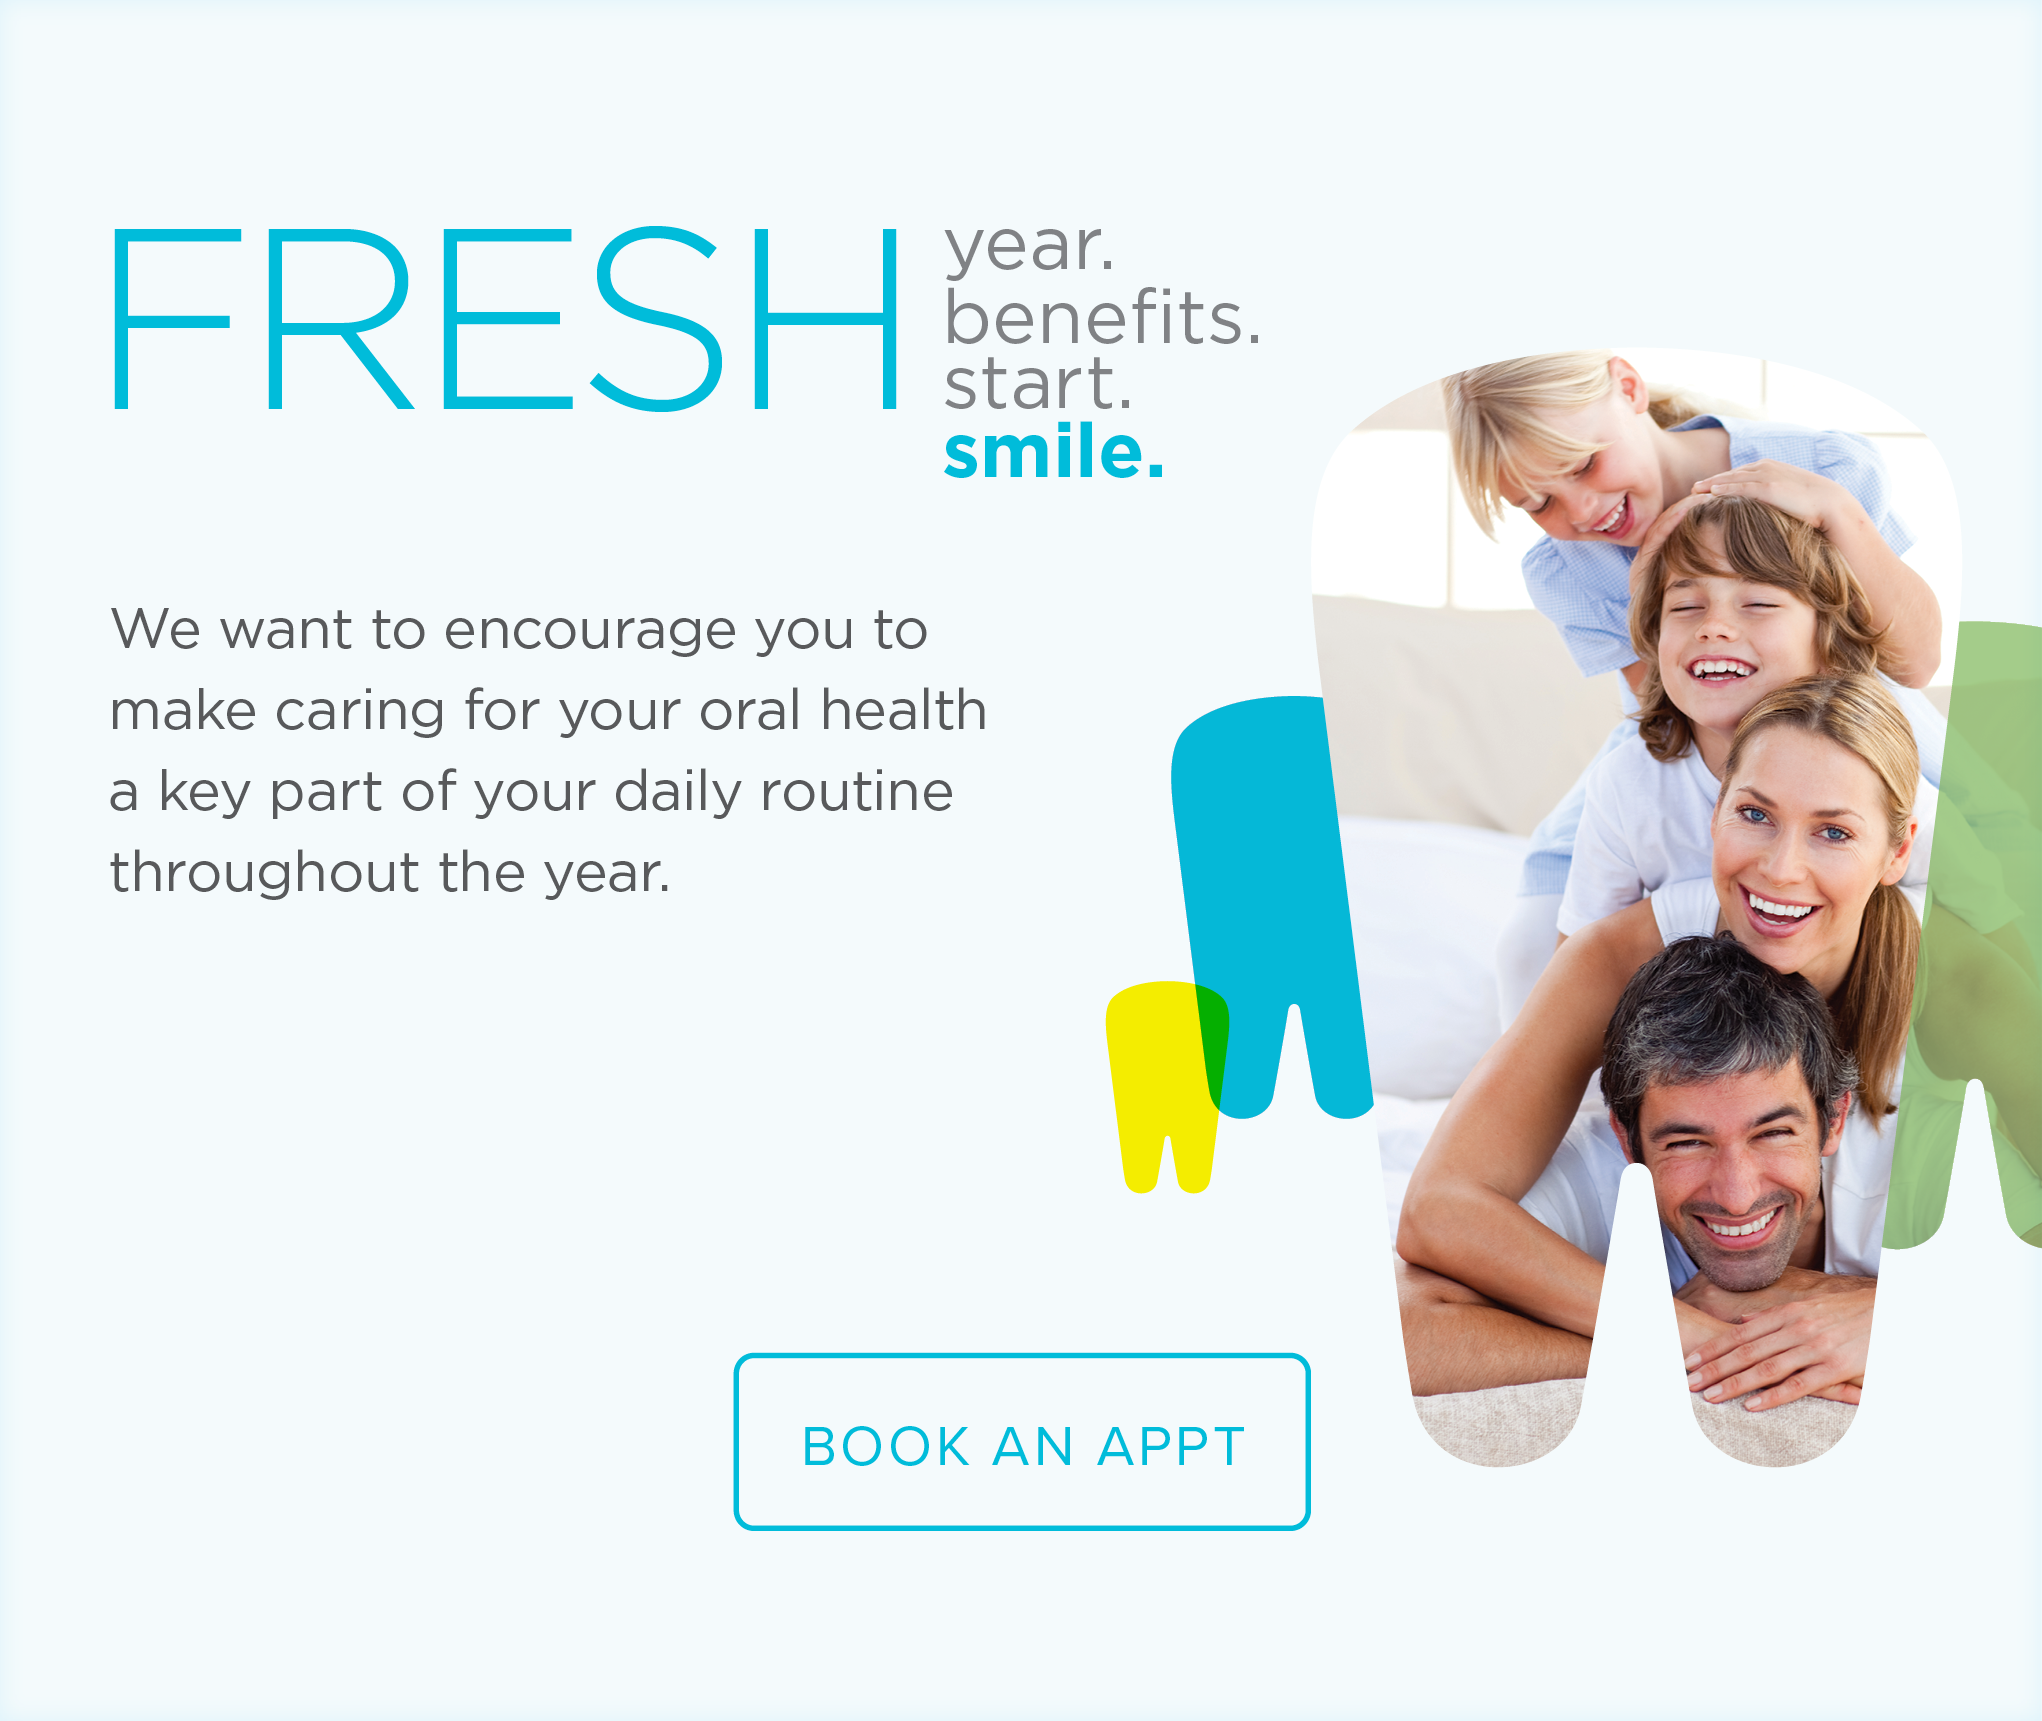 San Jacinto Smiles Dentistry - Make the Most of Your Benefits